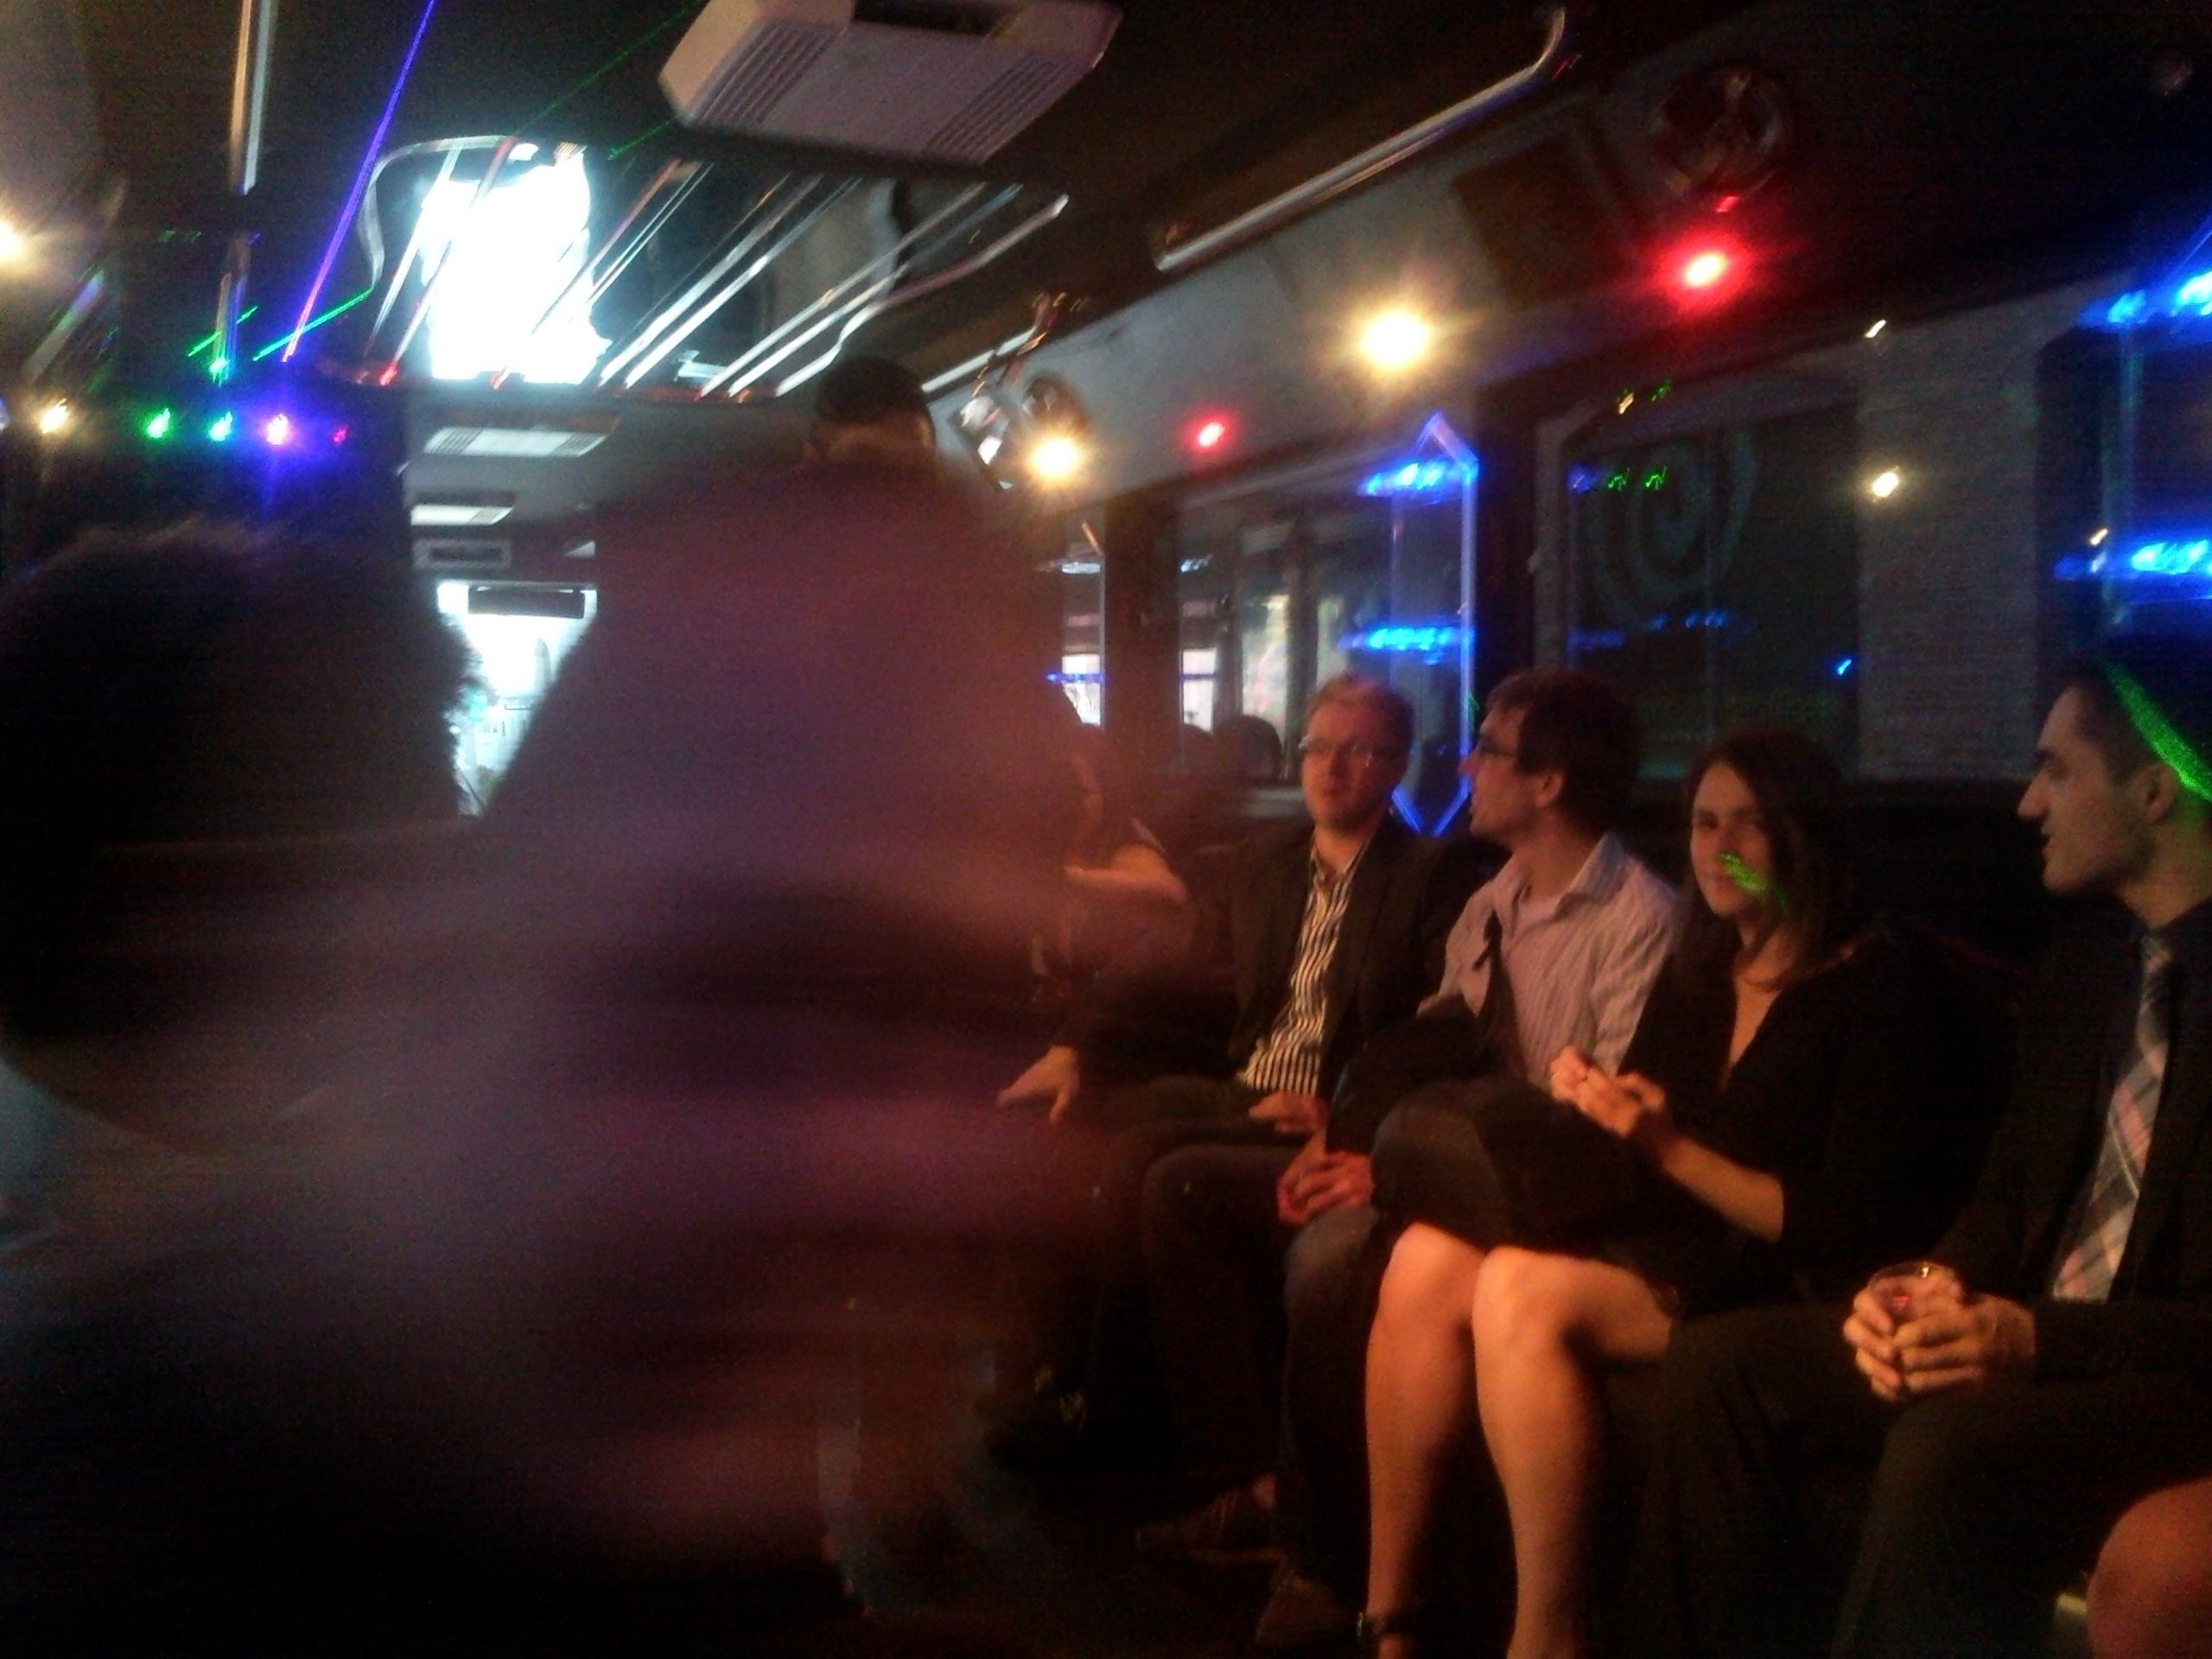 On the party bus - Vova just moved his head